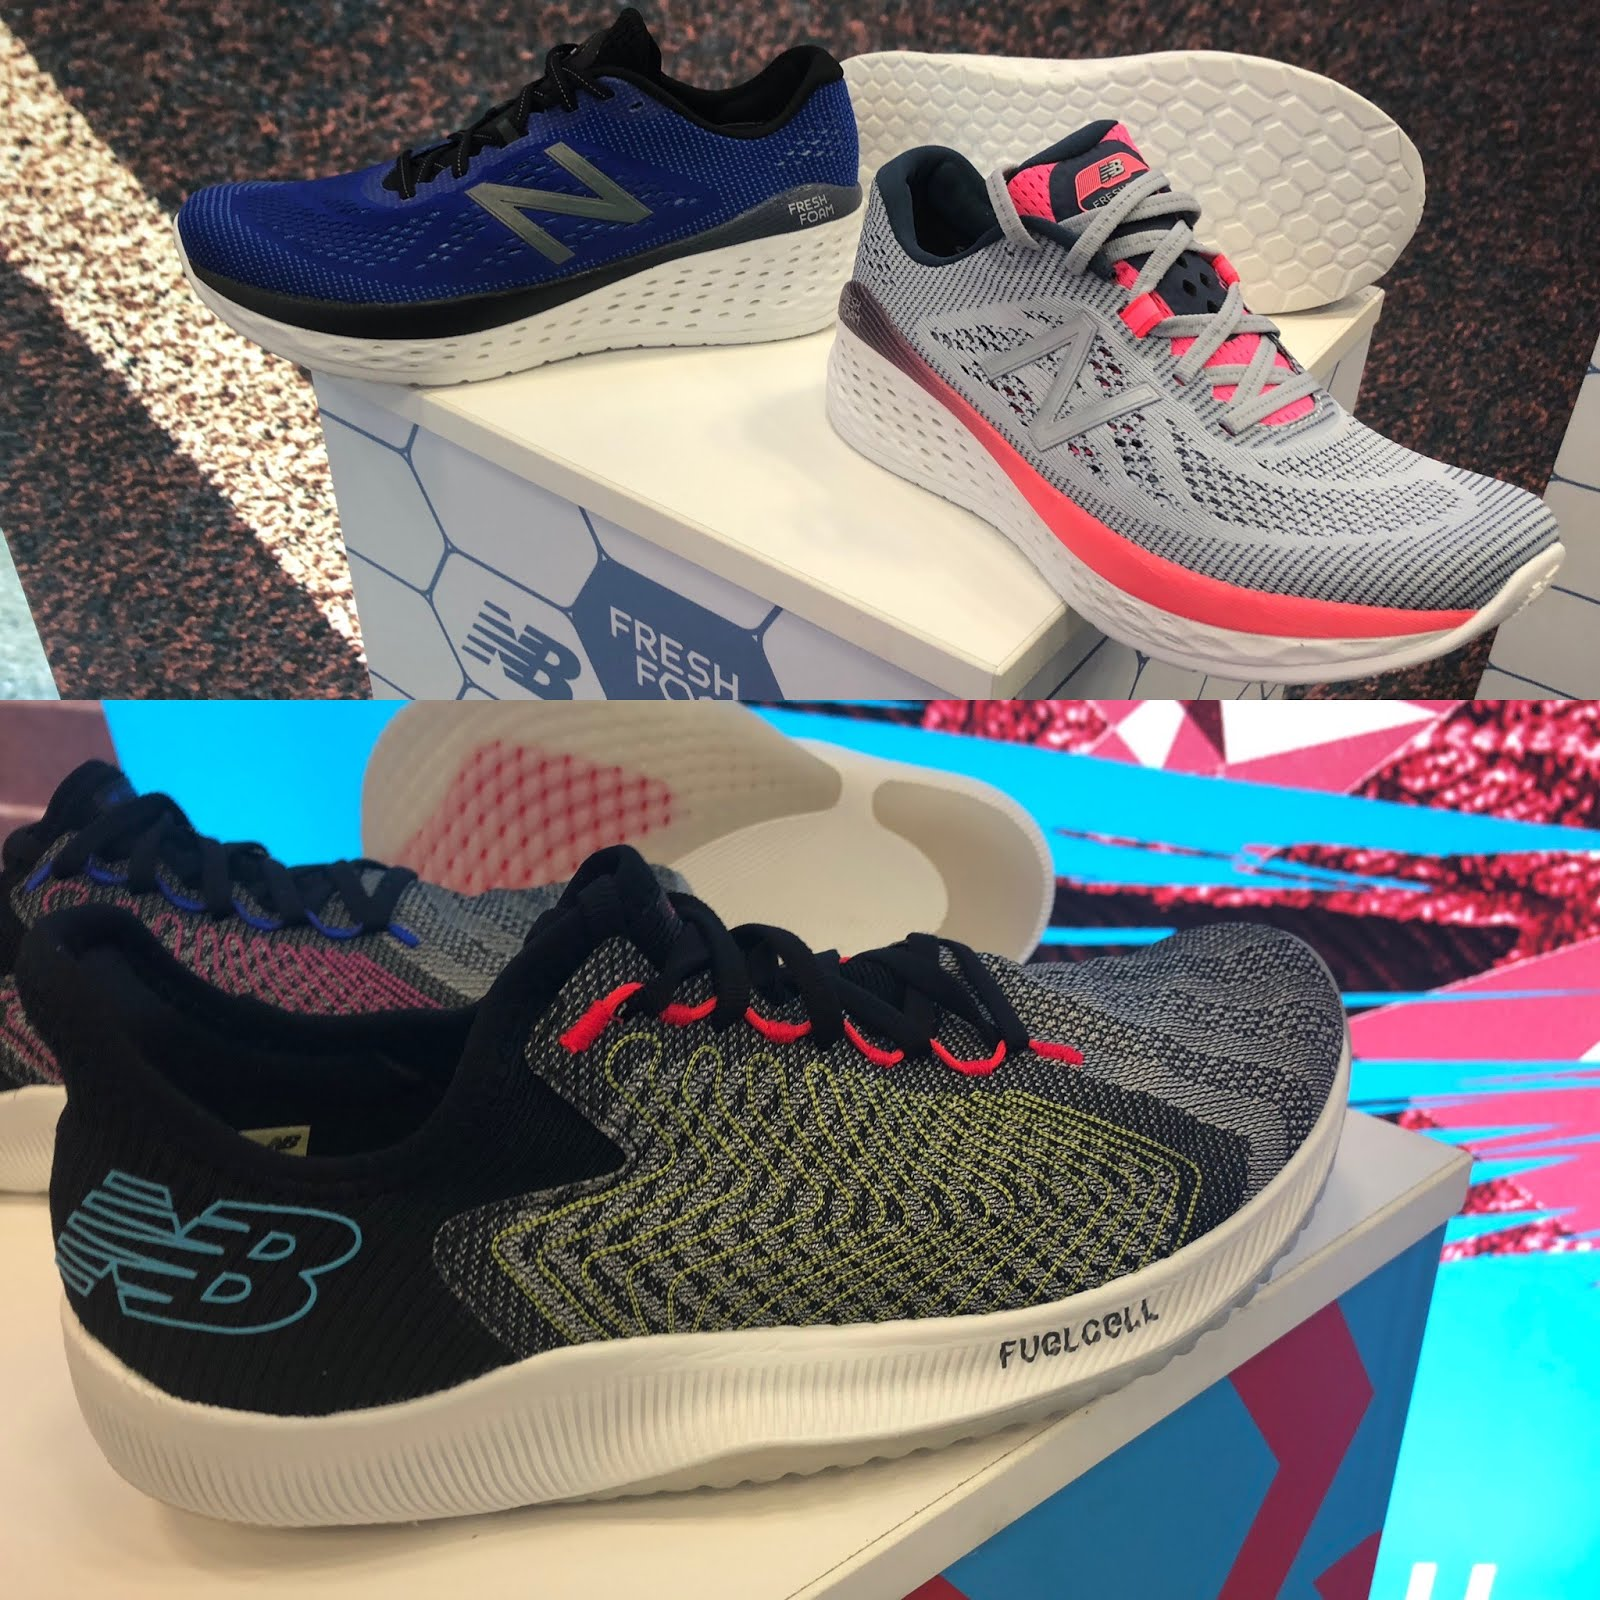 6c012277f2e31 New Balance 2019 Previews: Fuel Cell Rebel, Fresh Foam More, Fresh Foam  Beacon 2